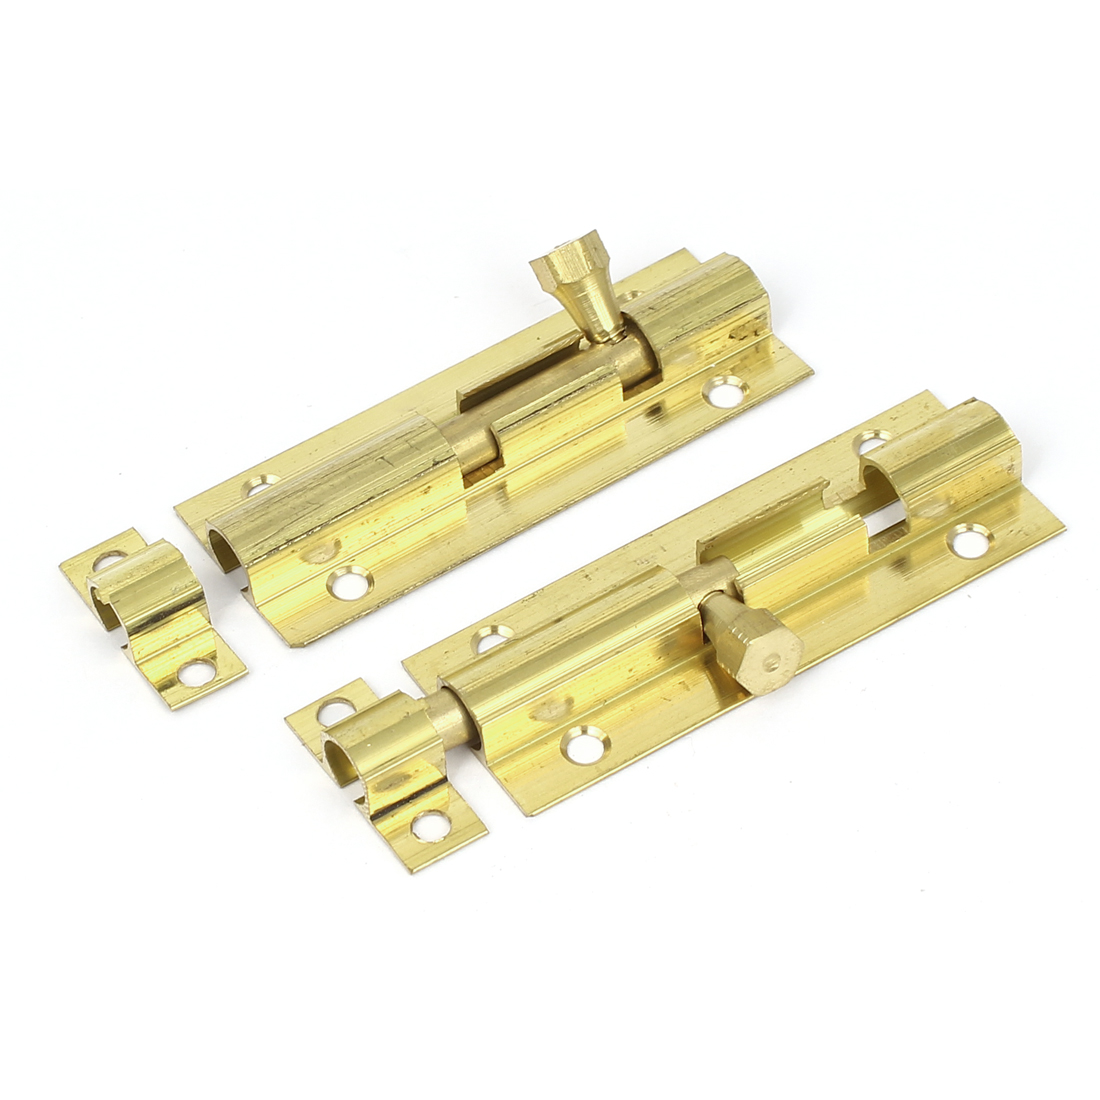 "Drawer Dresser Wooden Case 2.8"" Length Security Lock Brass Barrel Bolt Latch 2pcs."